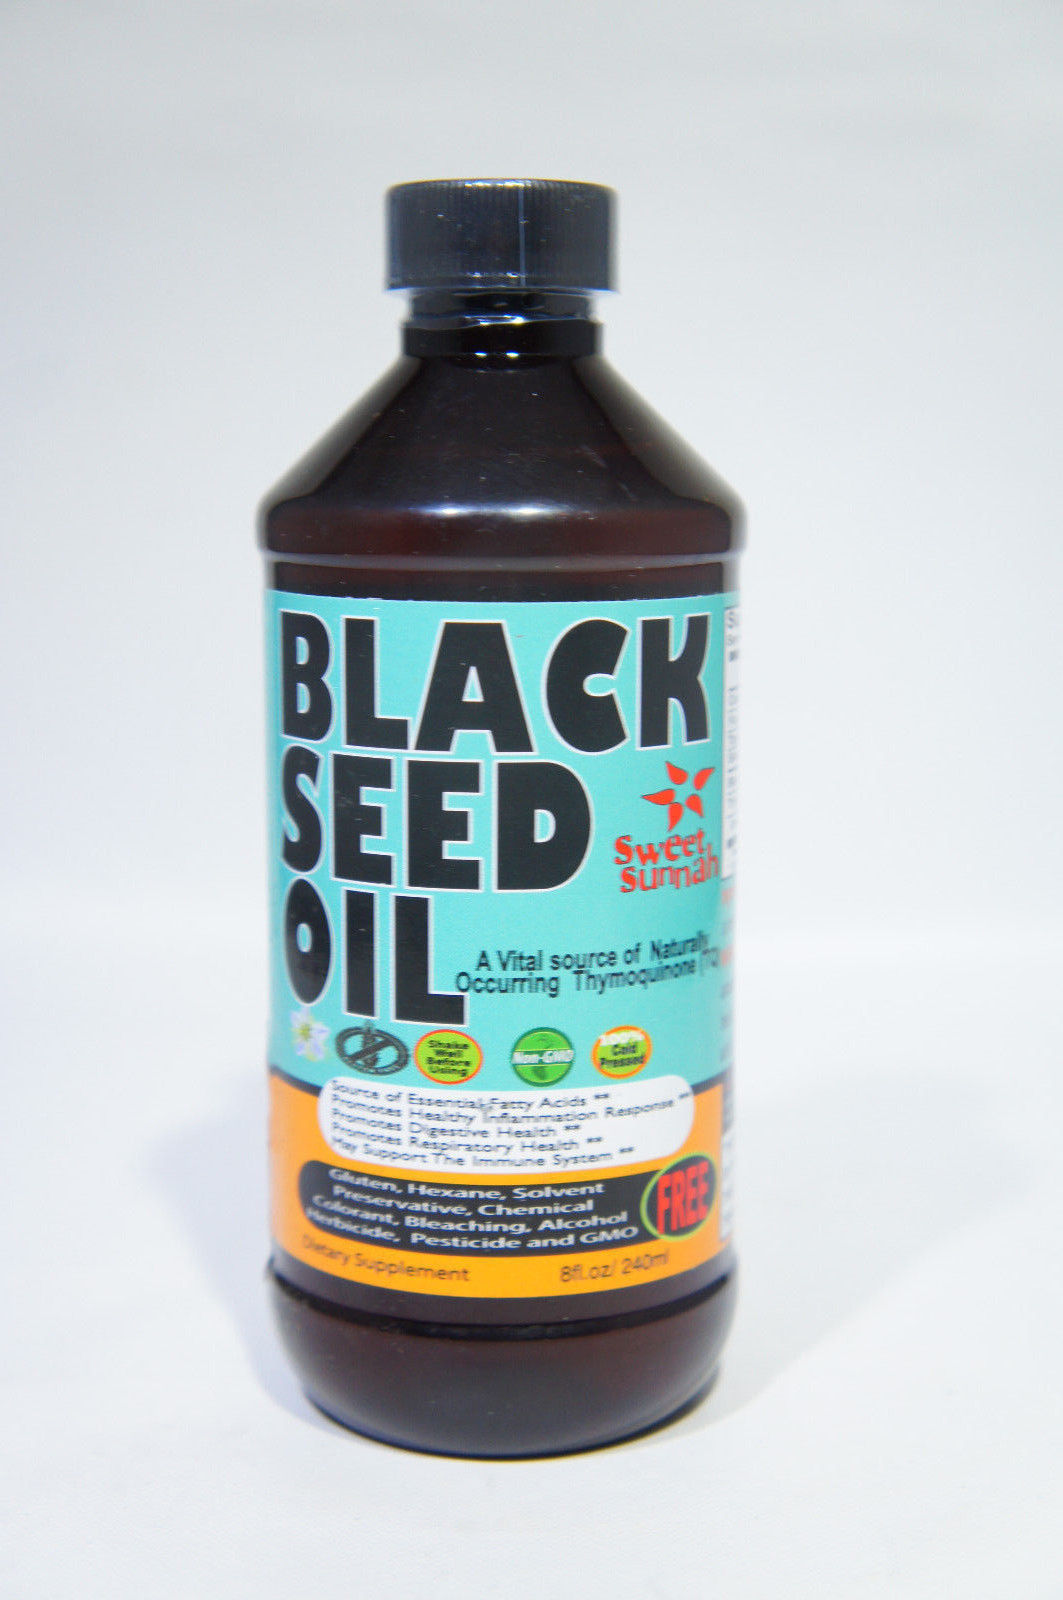 Premium Black Seed Oil Cold Pressed Plastic Bottle 8 oz by Sweet Sunnah